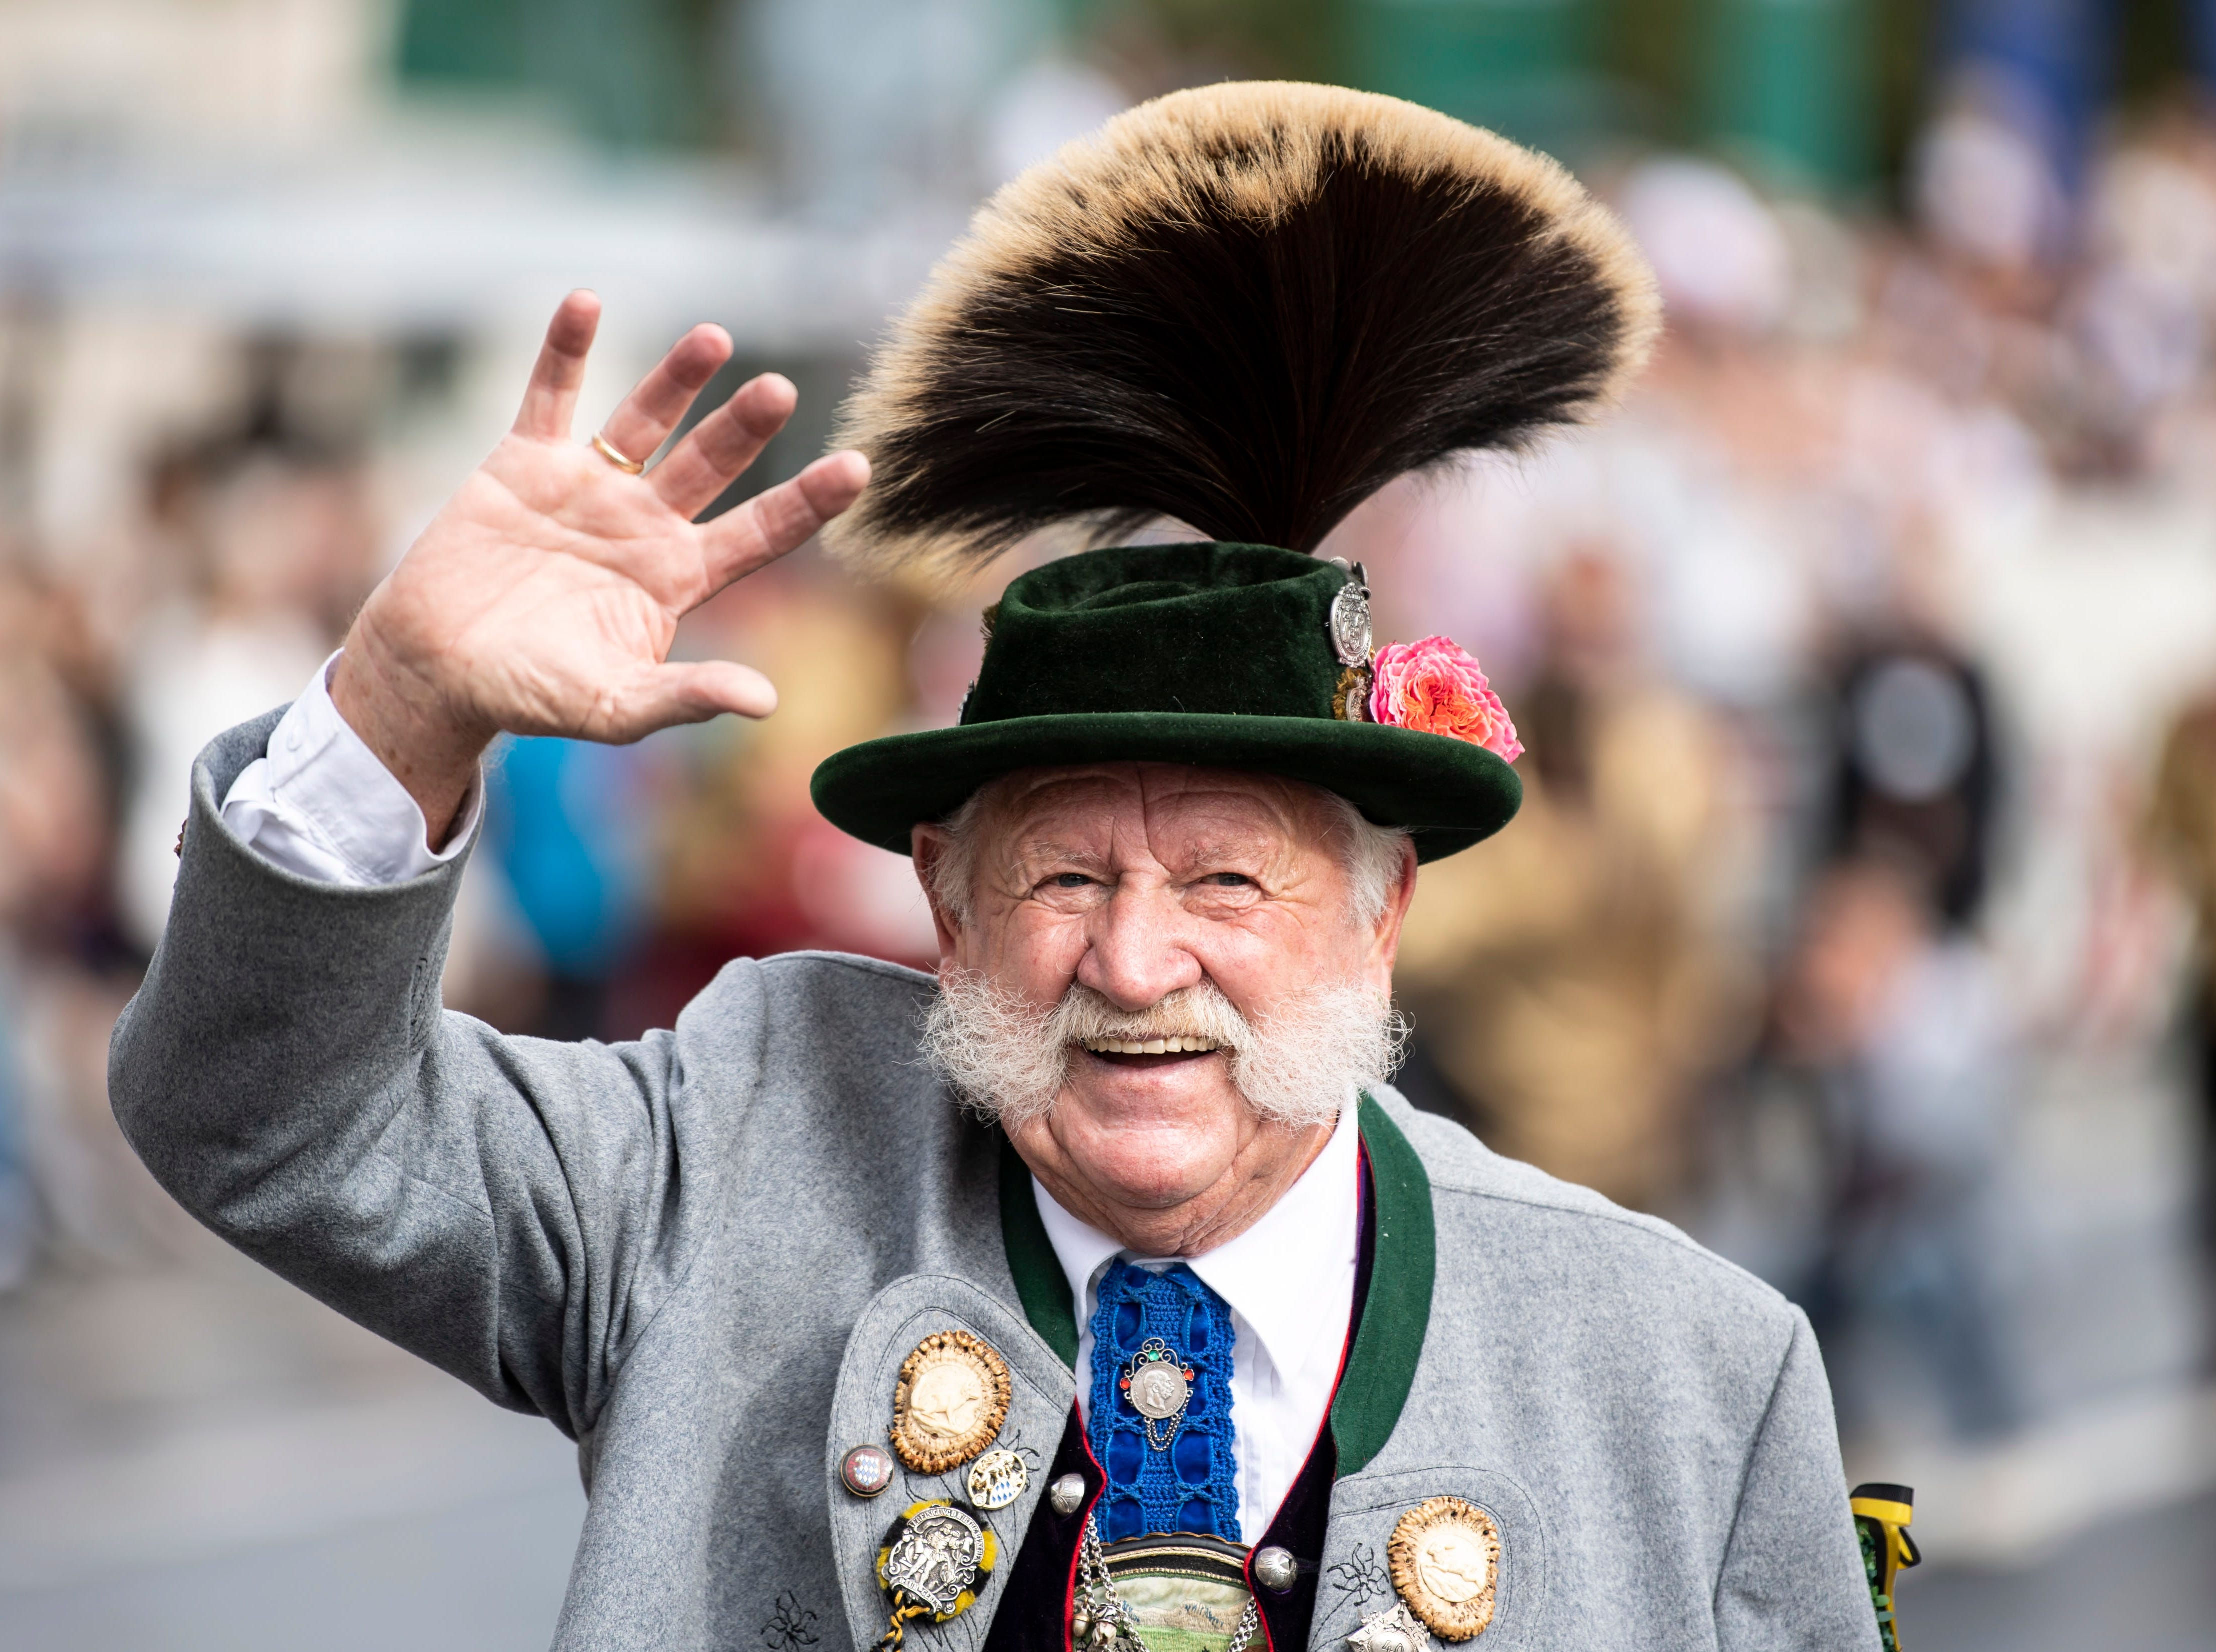 A man in traditional costume waves during the shooting club and traditional costume parade on the second day of the 185th Oktoberfest beer festival in Munich, Germany on Sept. 23, 2018.